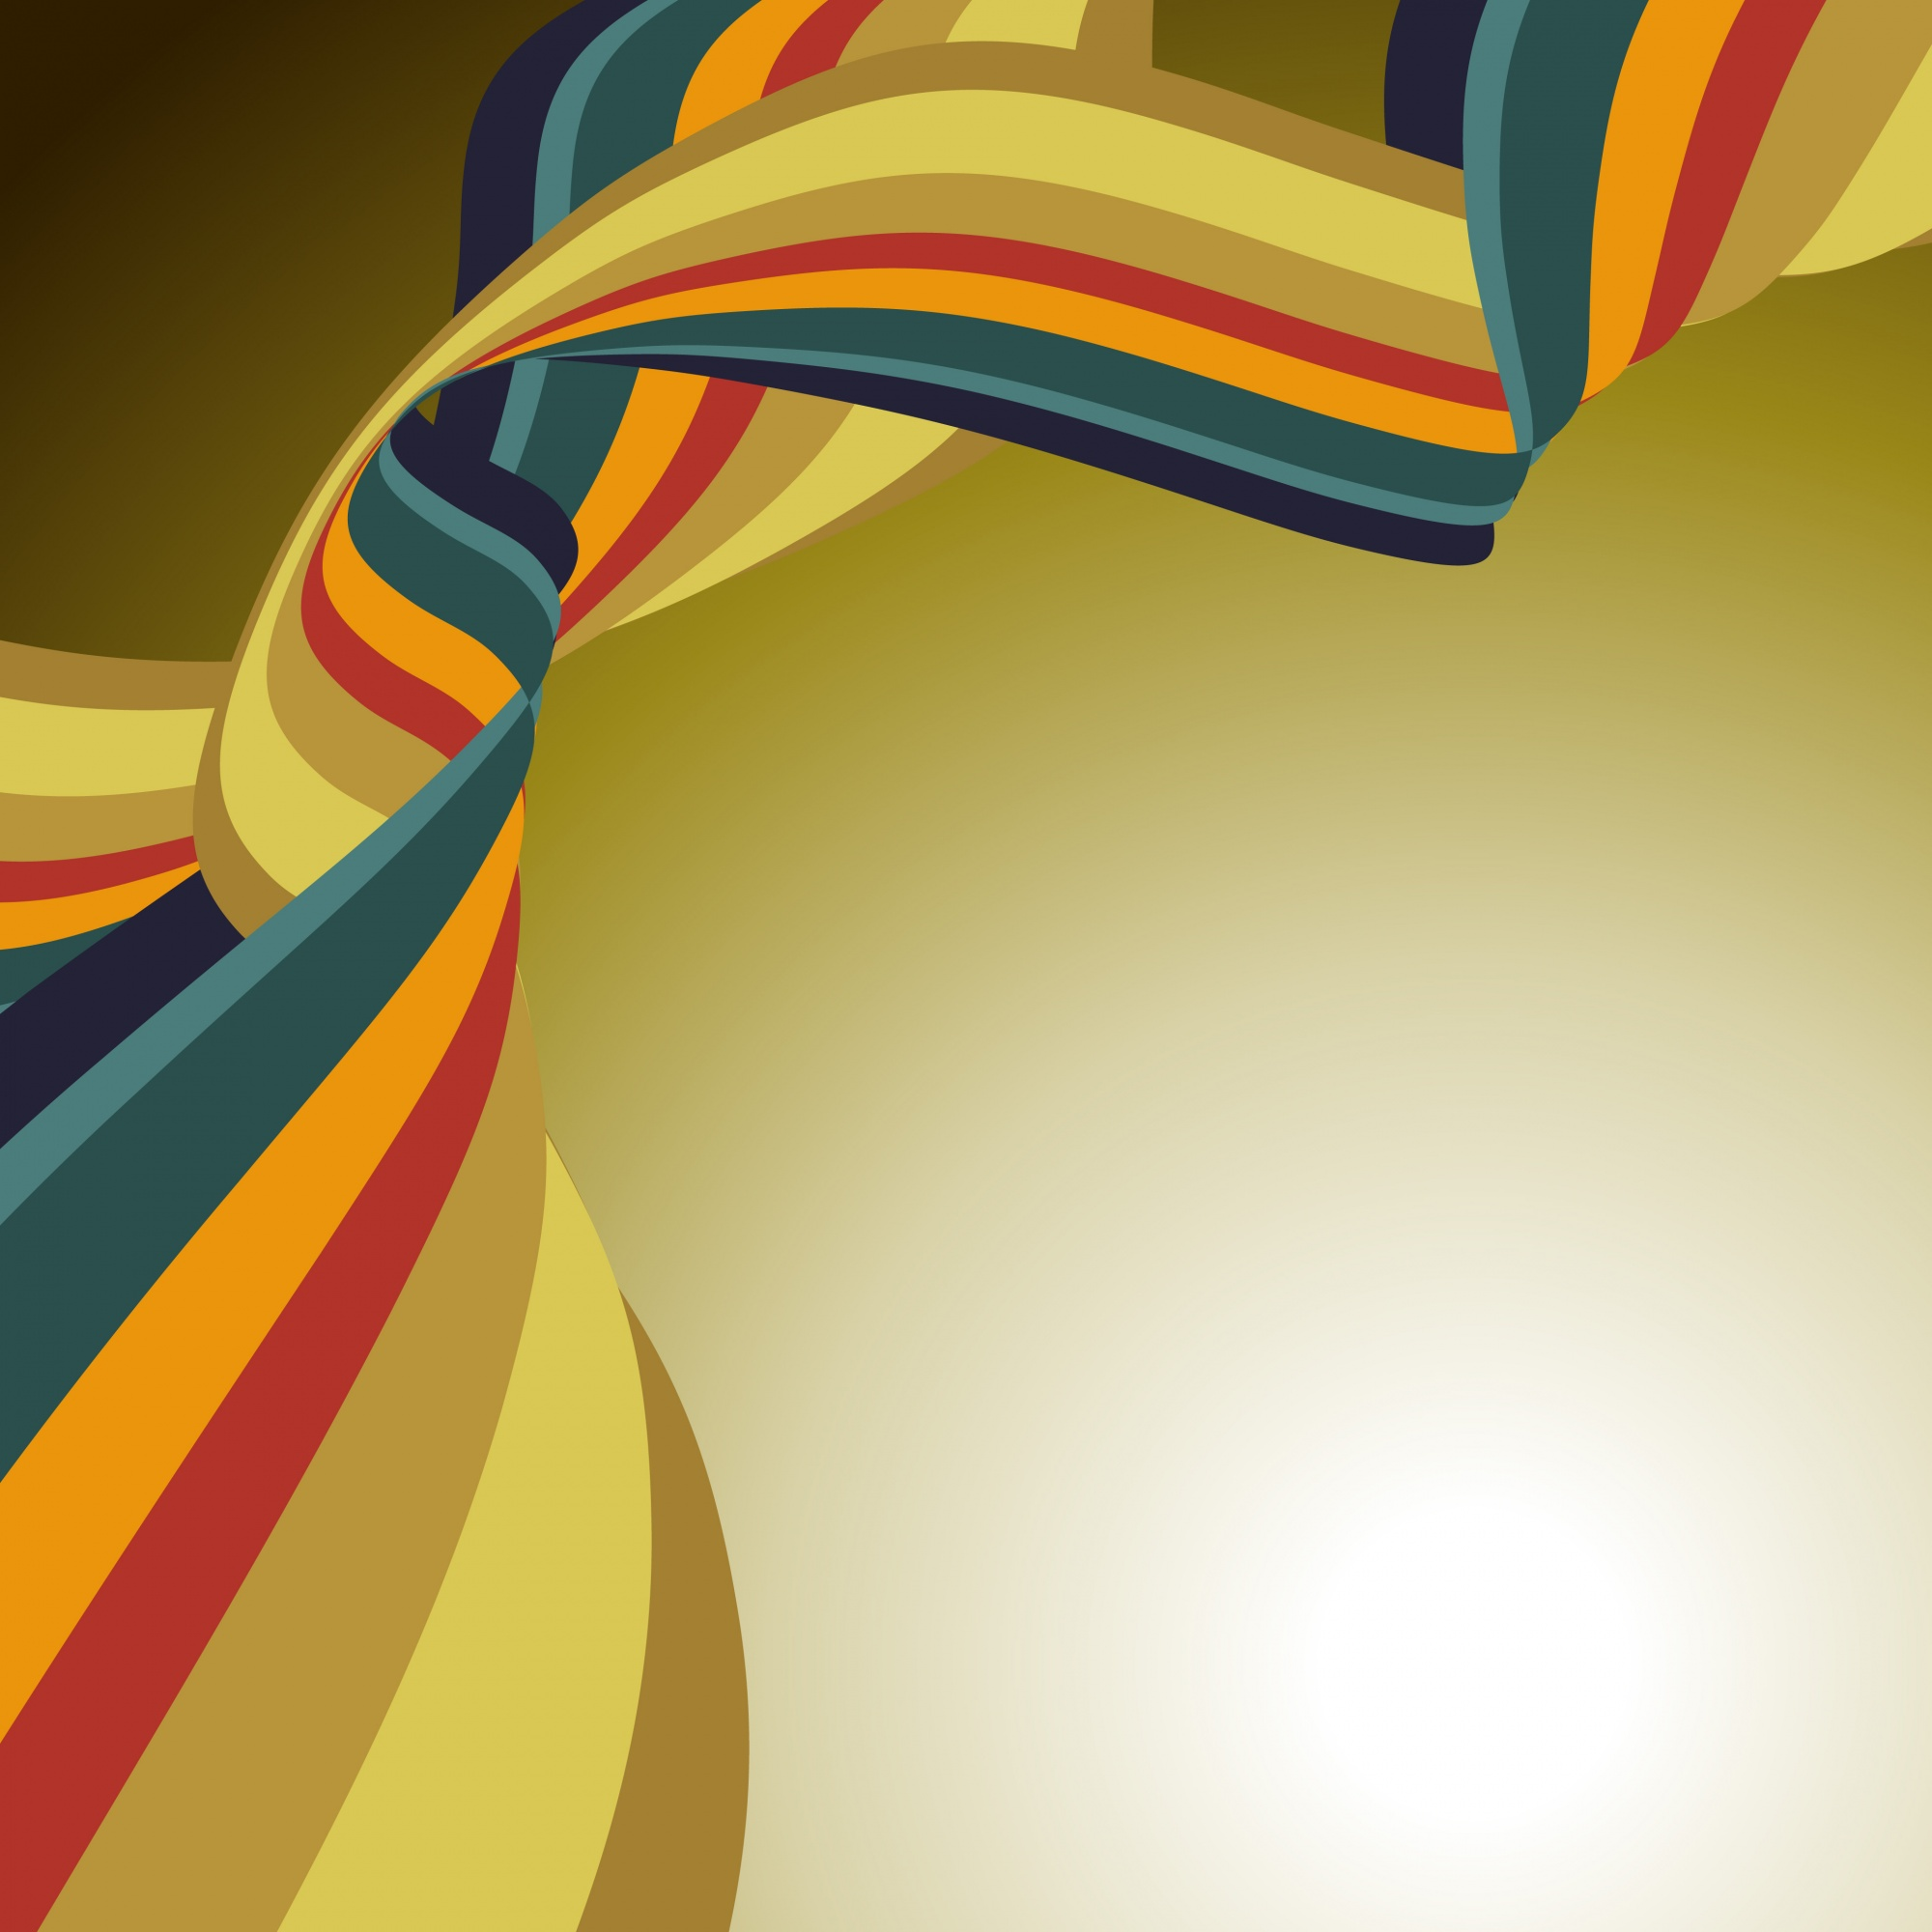 Vector abstract wave design background